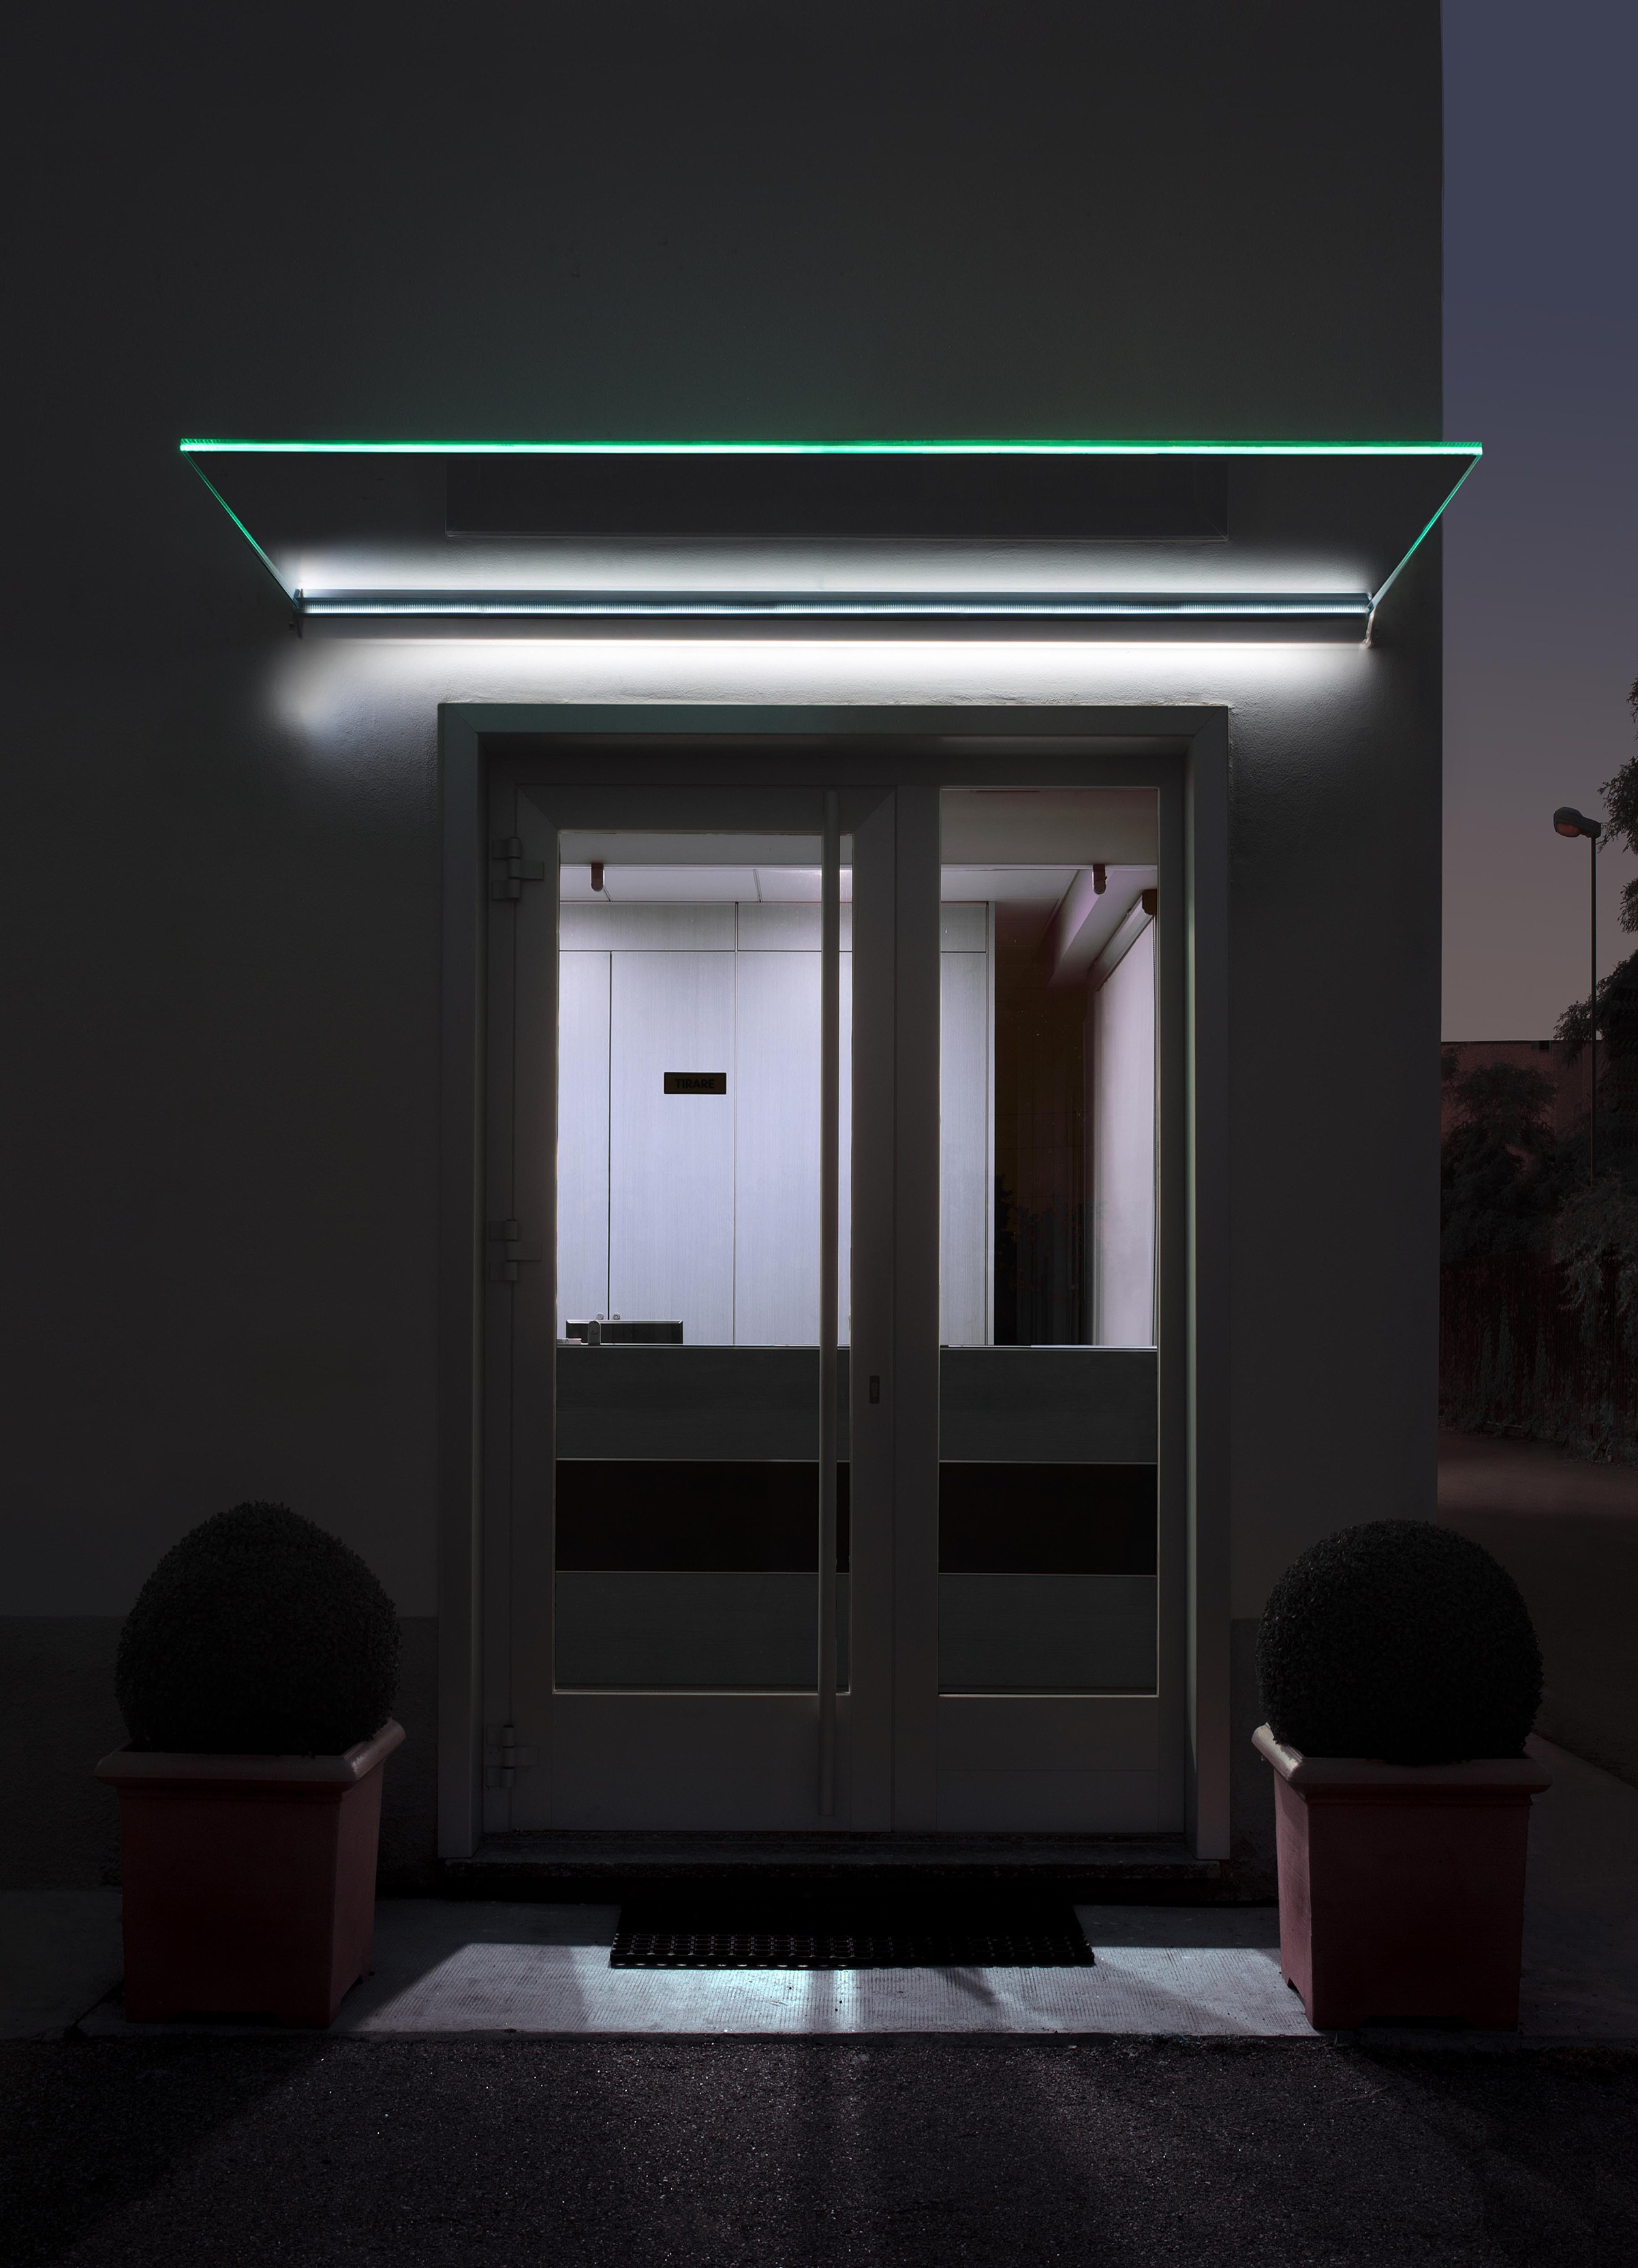 Glass Door Canopy With Built In Lights Mira By Nuova Oxidal